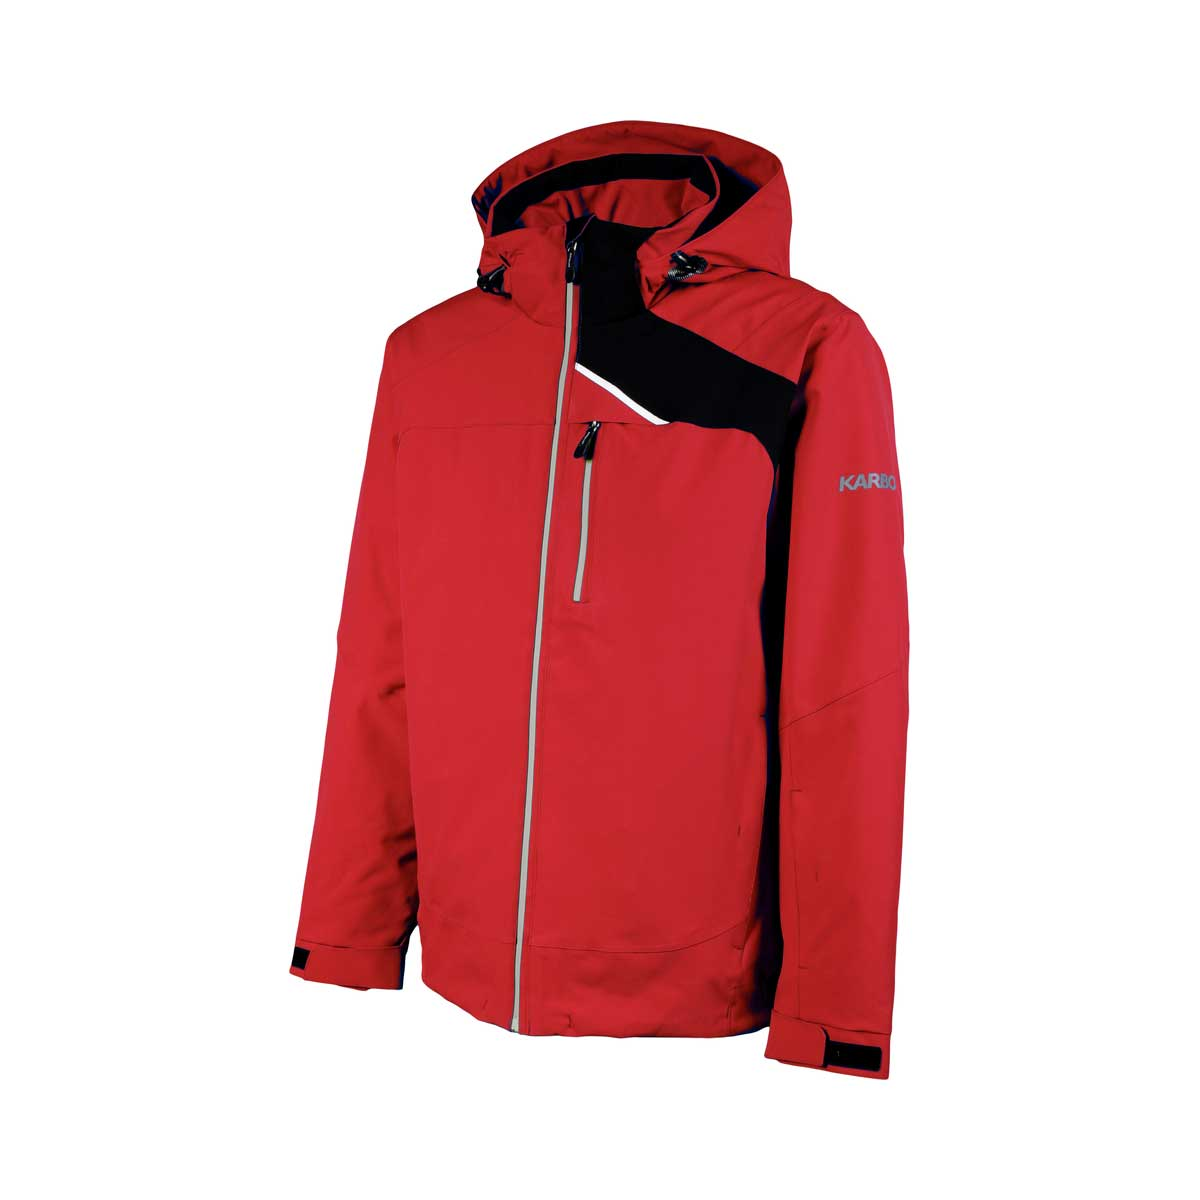 Karbon Men's Chromium Jacket in Red and Black